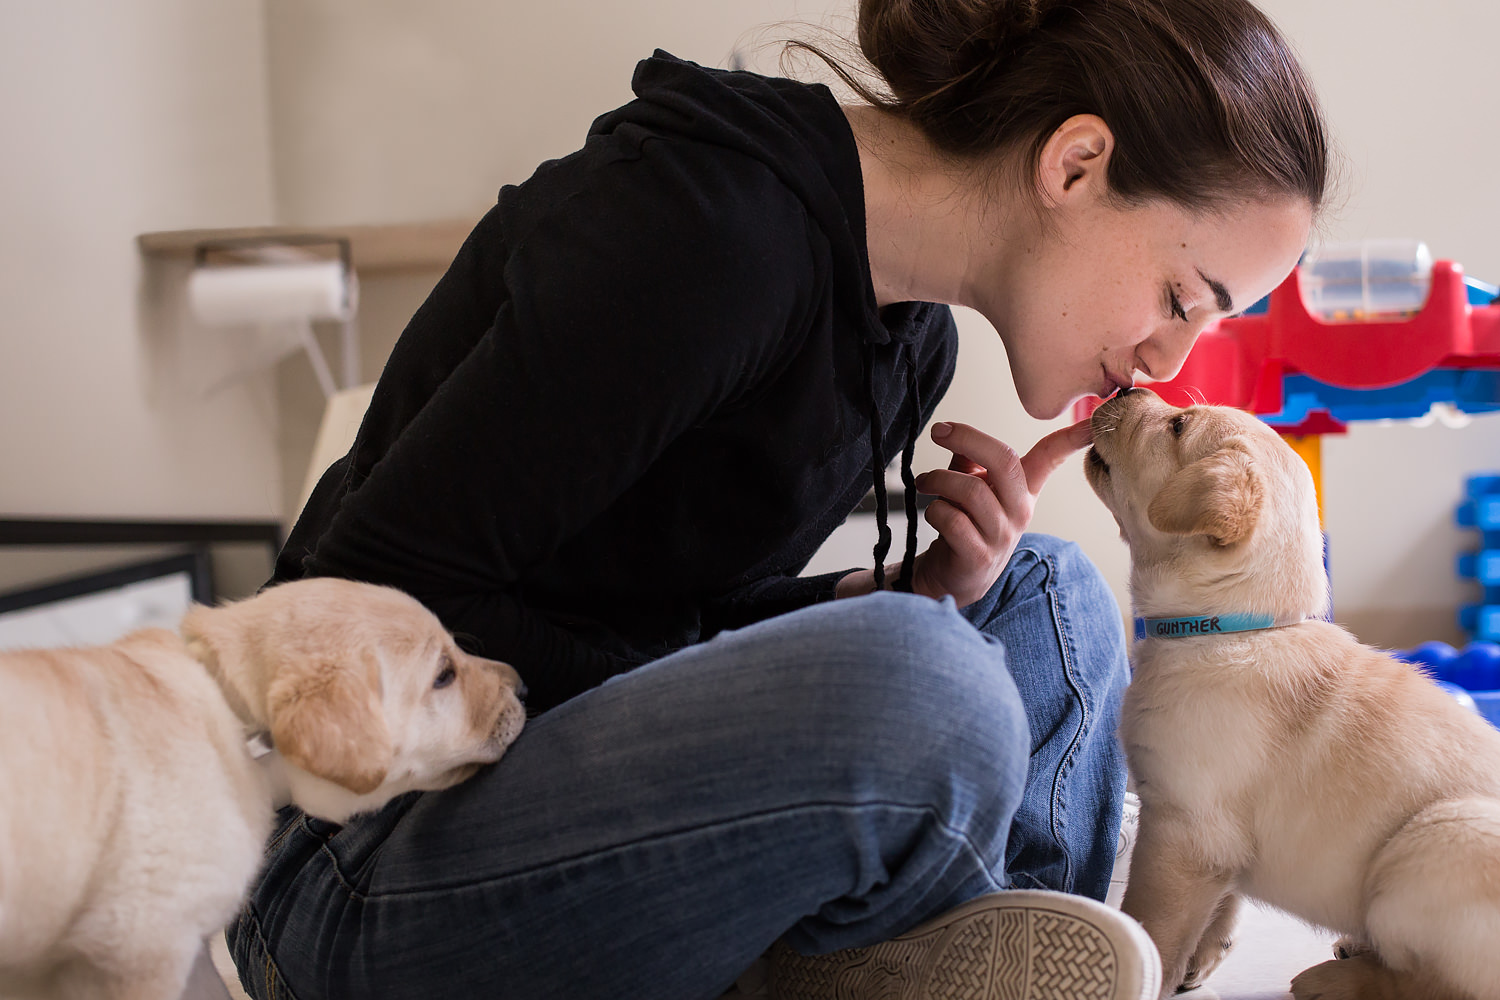 Guiding Eyes volunteer Lauren kisses pup Grant on the nose.